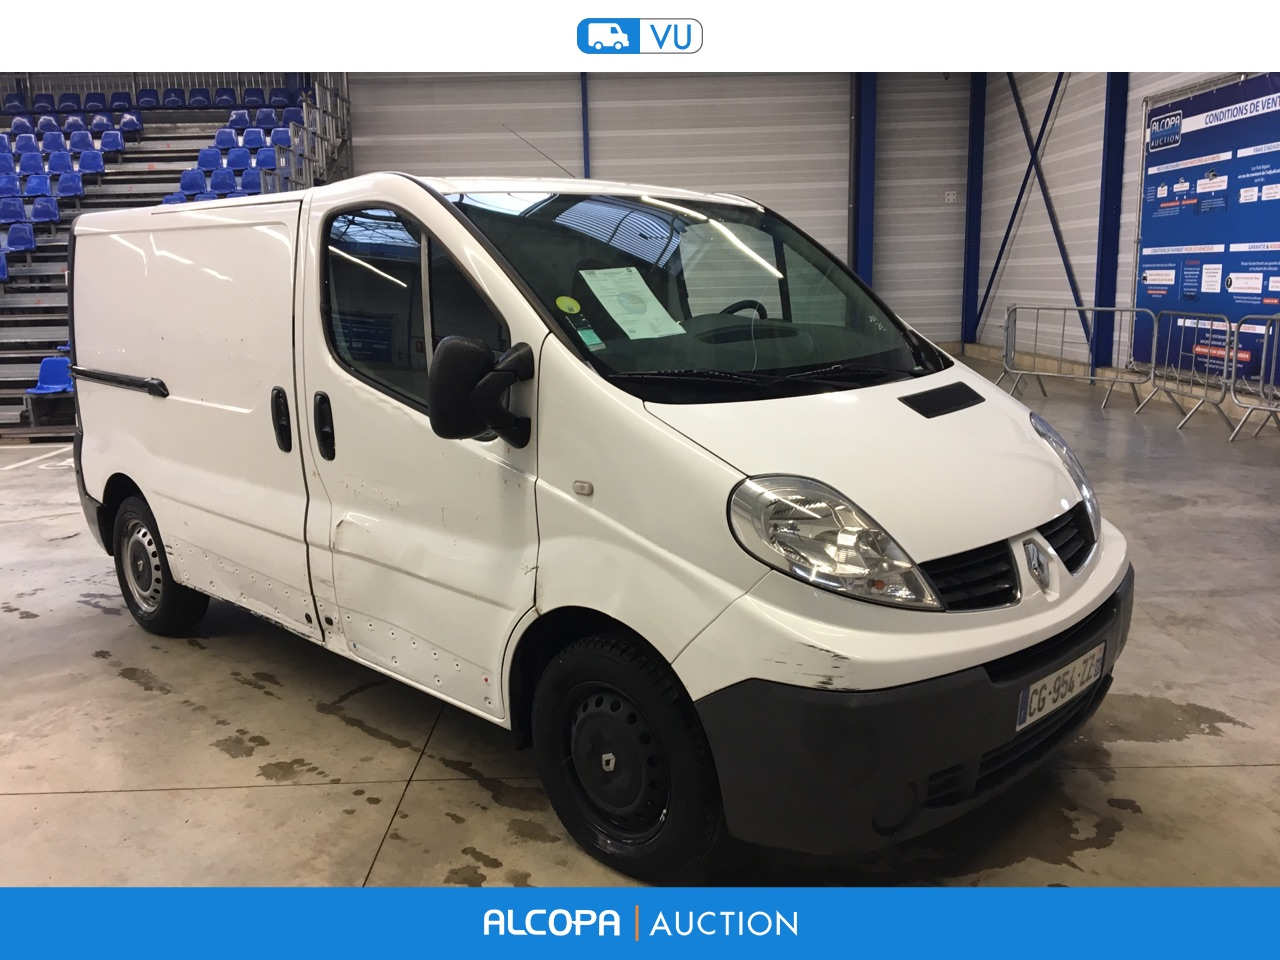 renault trafic trafic fg l1h1 1000kg dci 90 confort beauvais alcopa auction. Black Bedroom Furniture Sets. Home Design Ideas